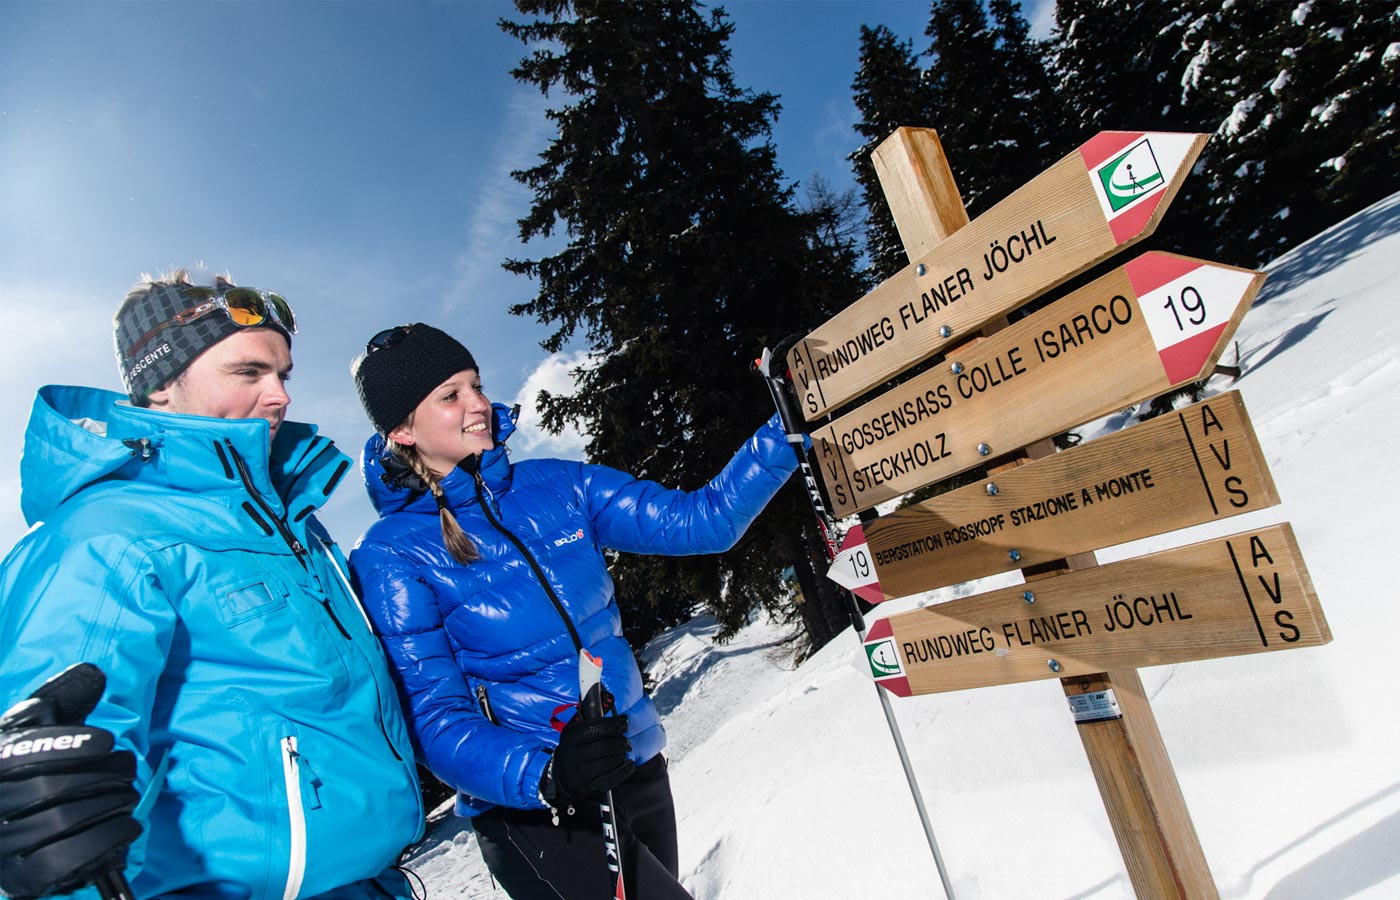 Skier couple pointing at a signpost on a sunny winter's day in the Rosskopf ski area